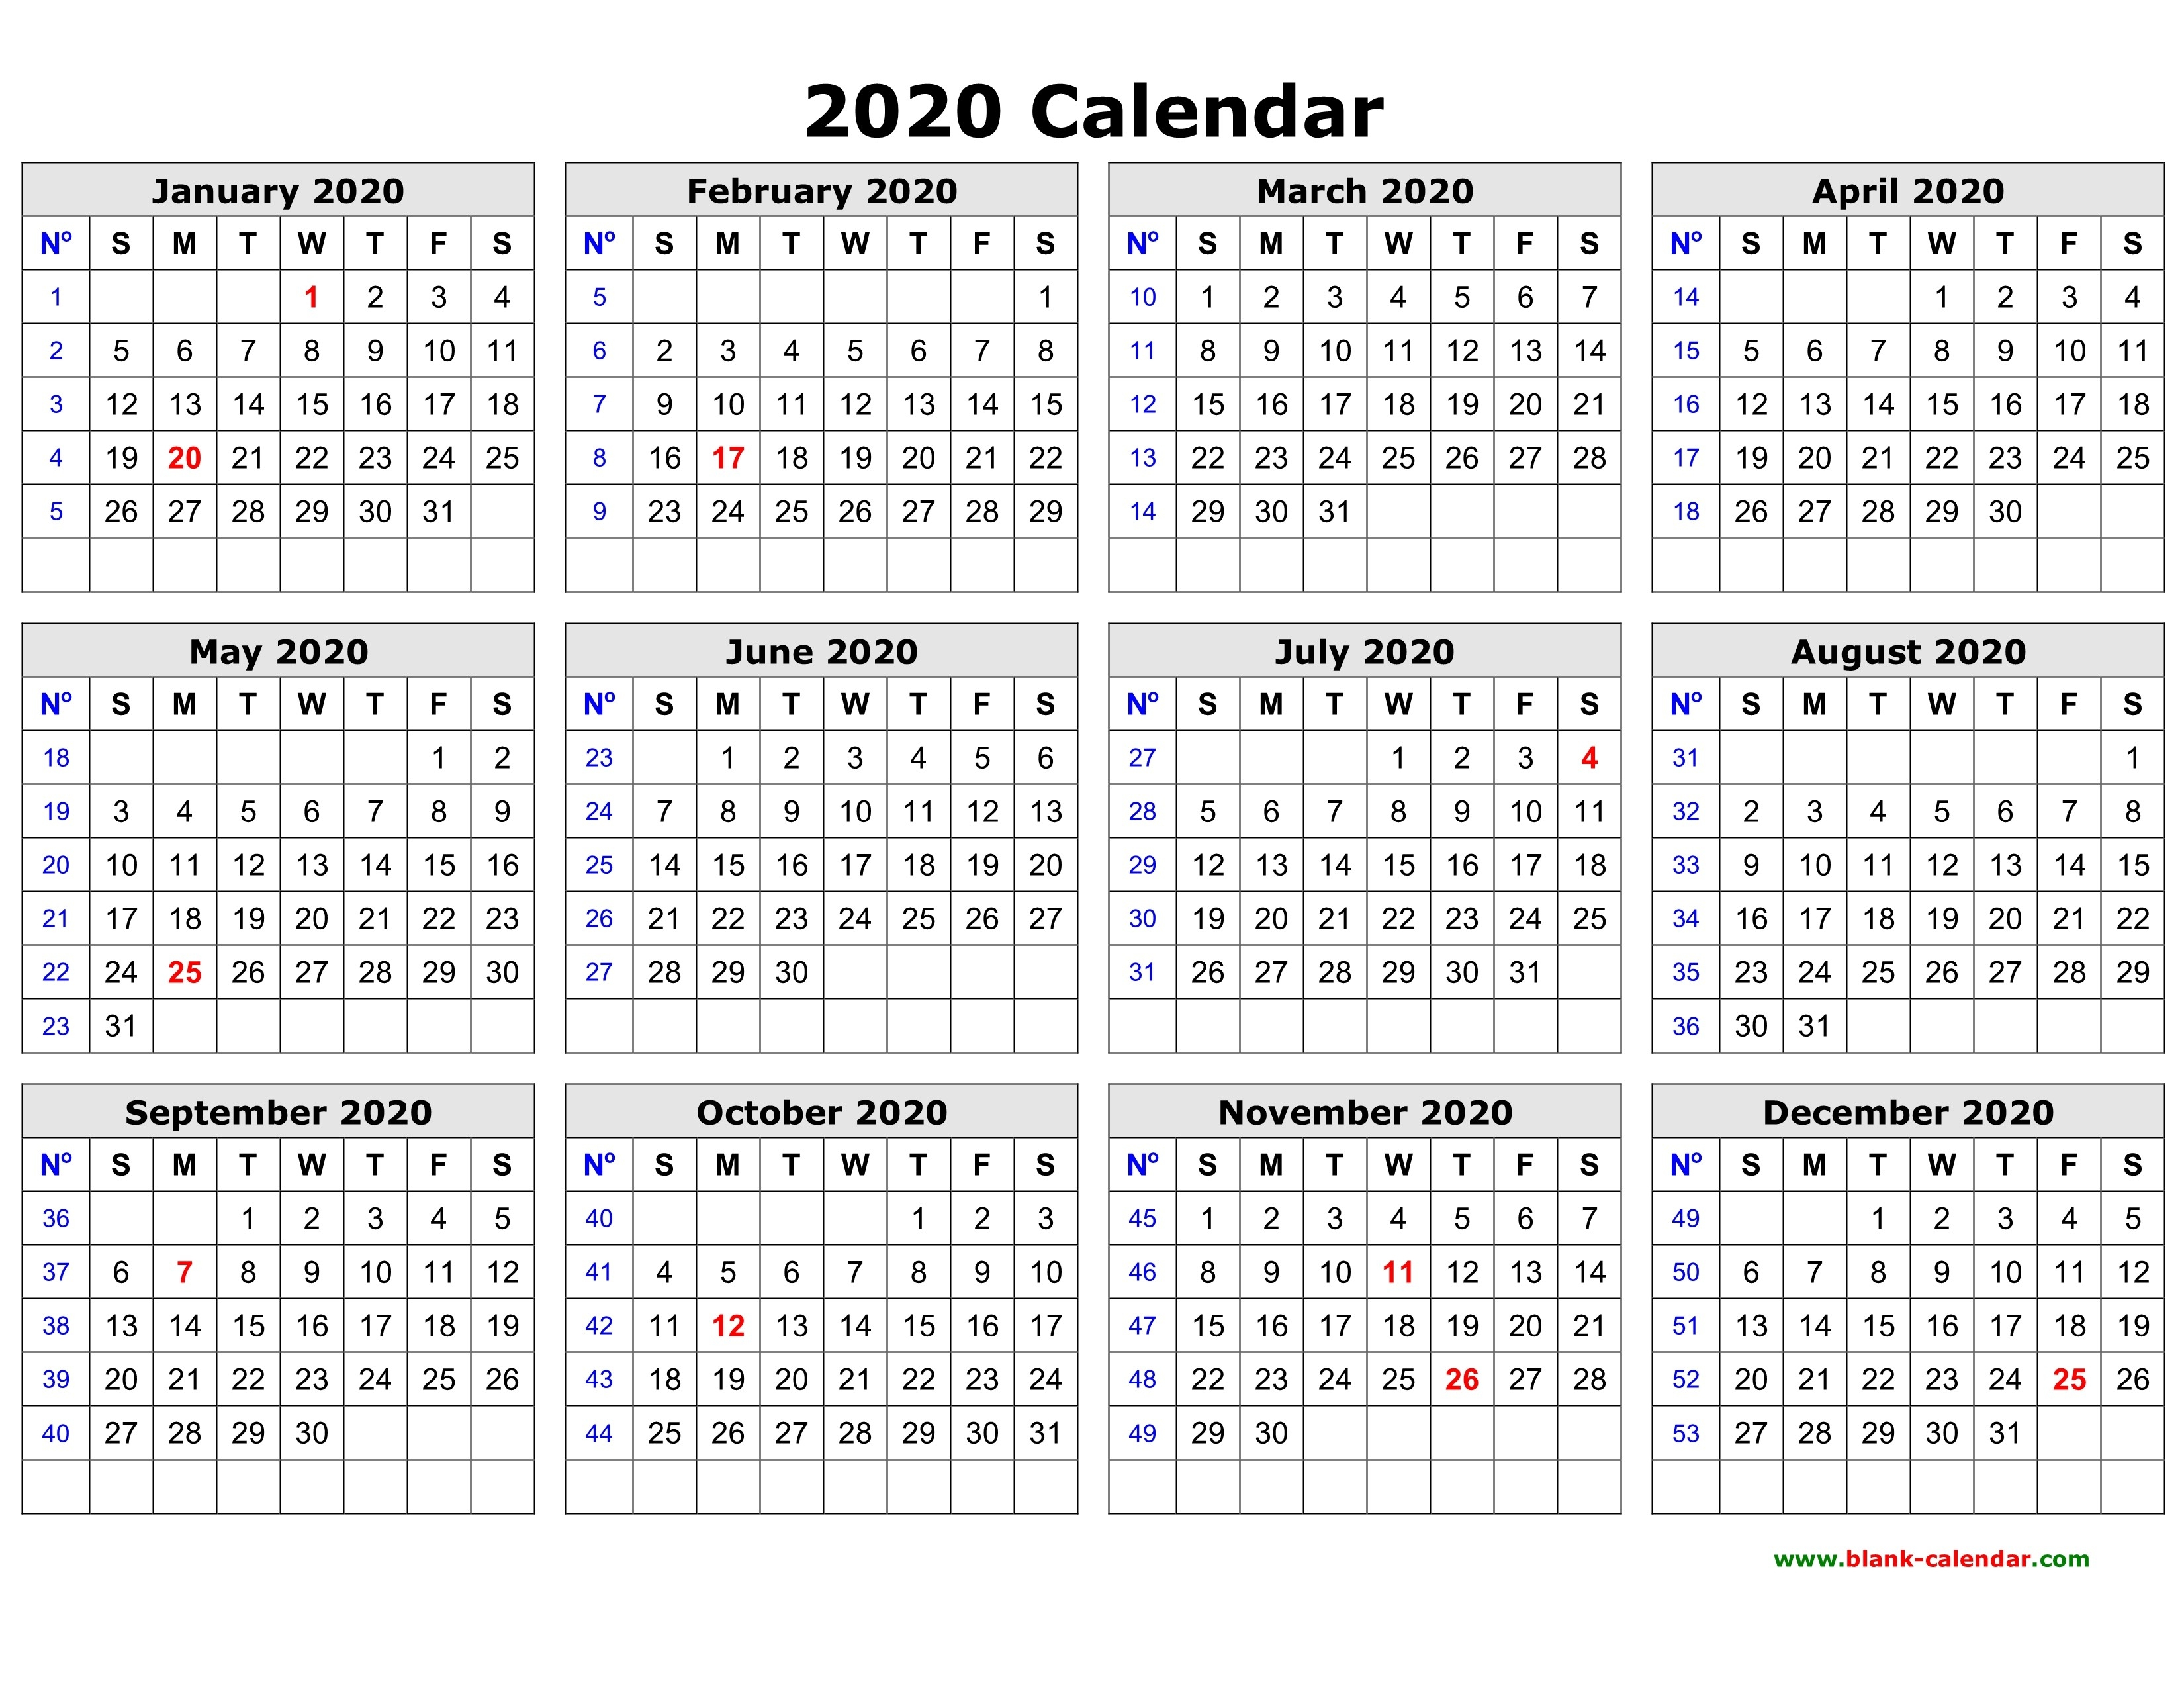 Free Download Printable Calendar 2020 In One Page, Clean Design.-6 Month Calendar Template 2020